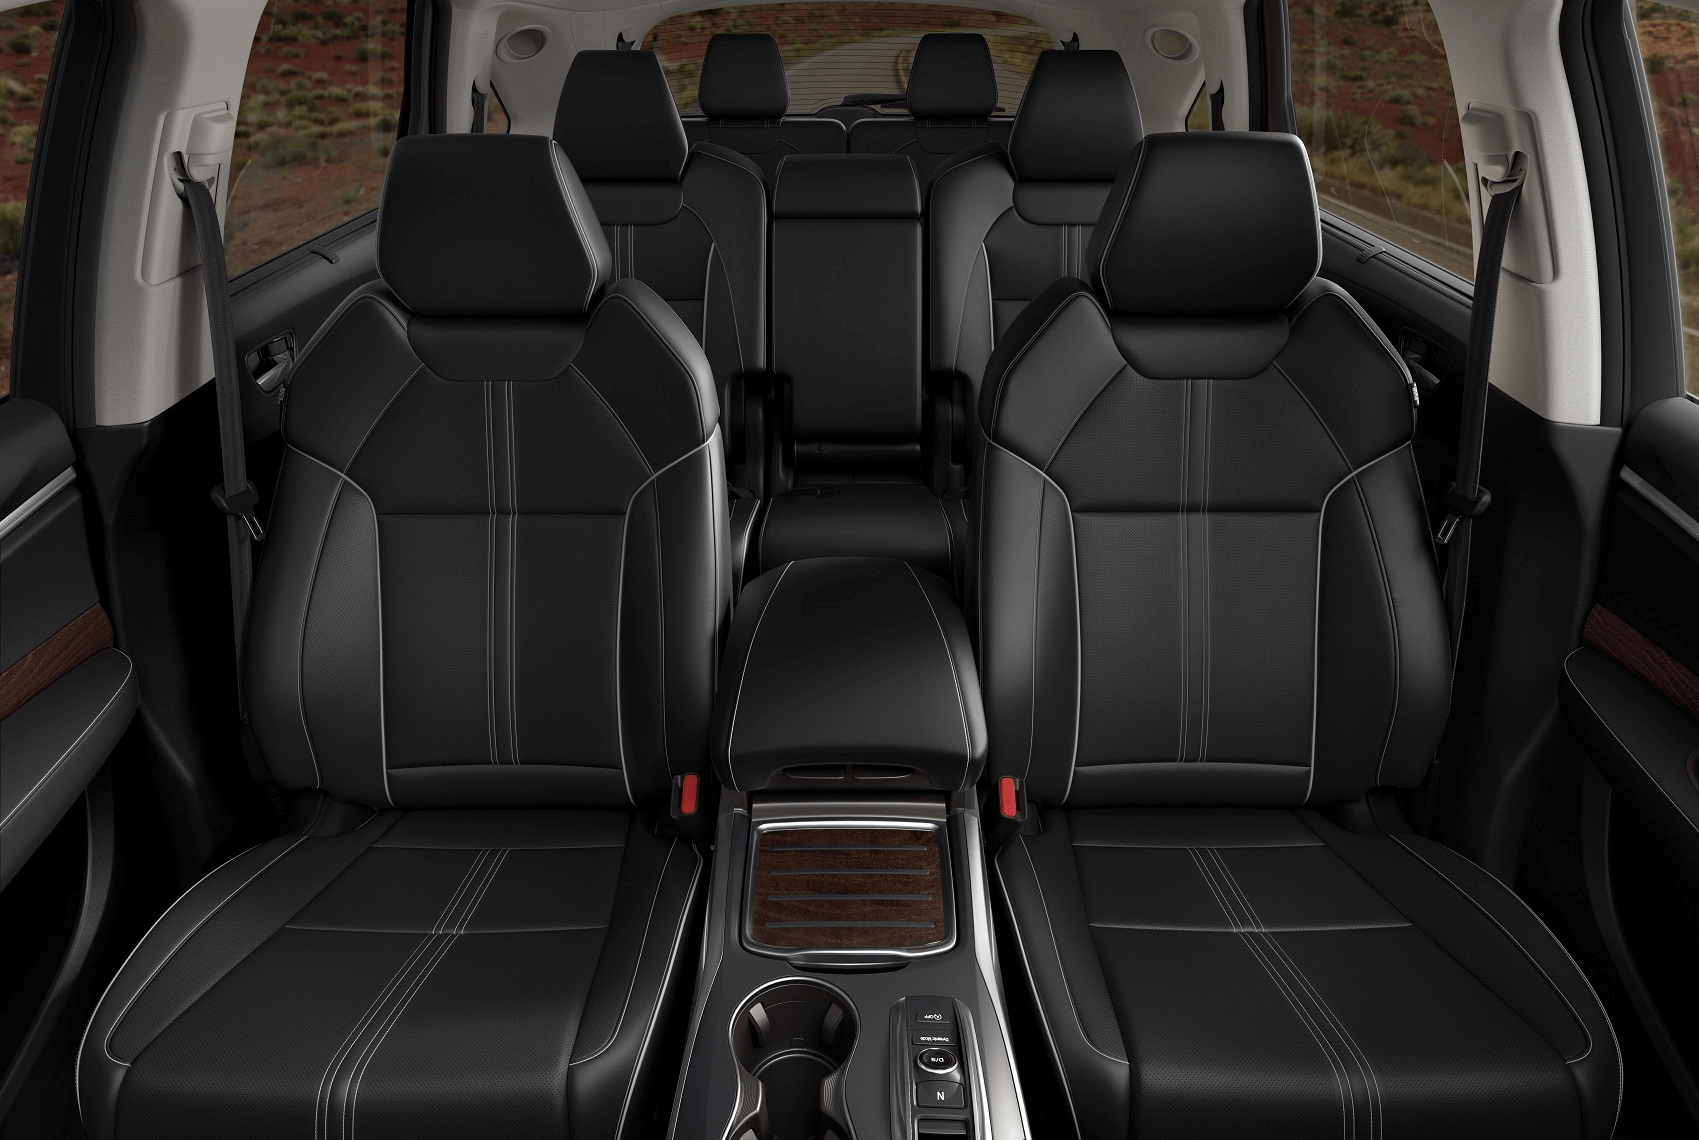 Acura MDX Leather Seats